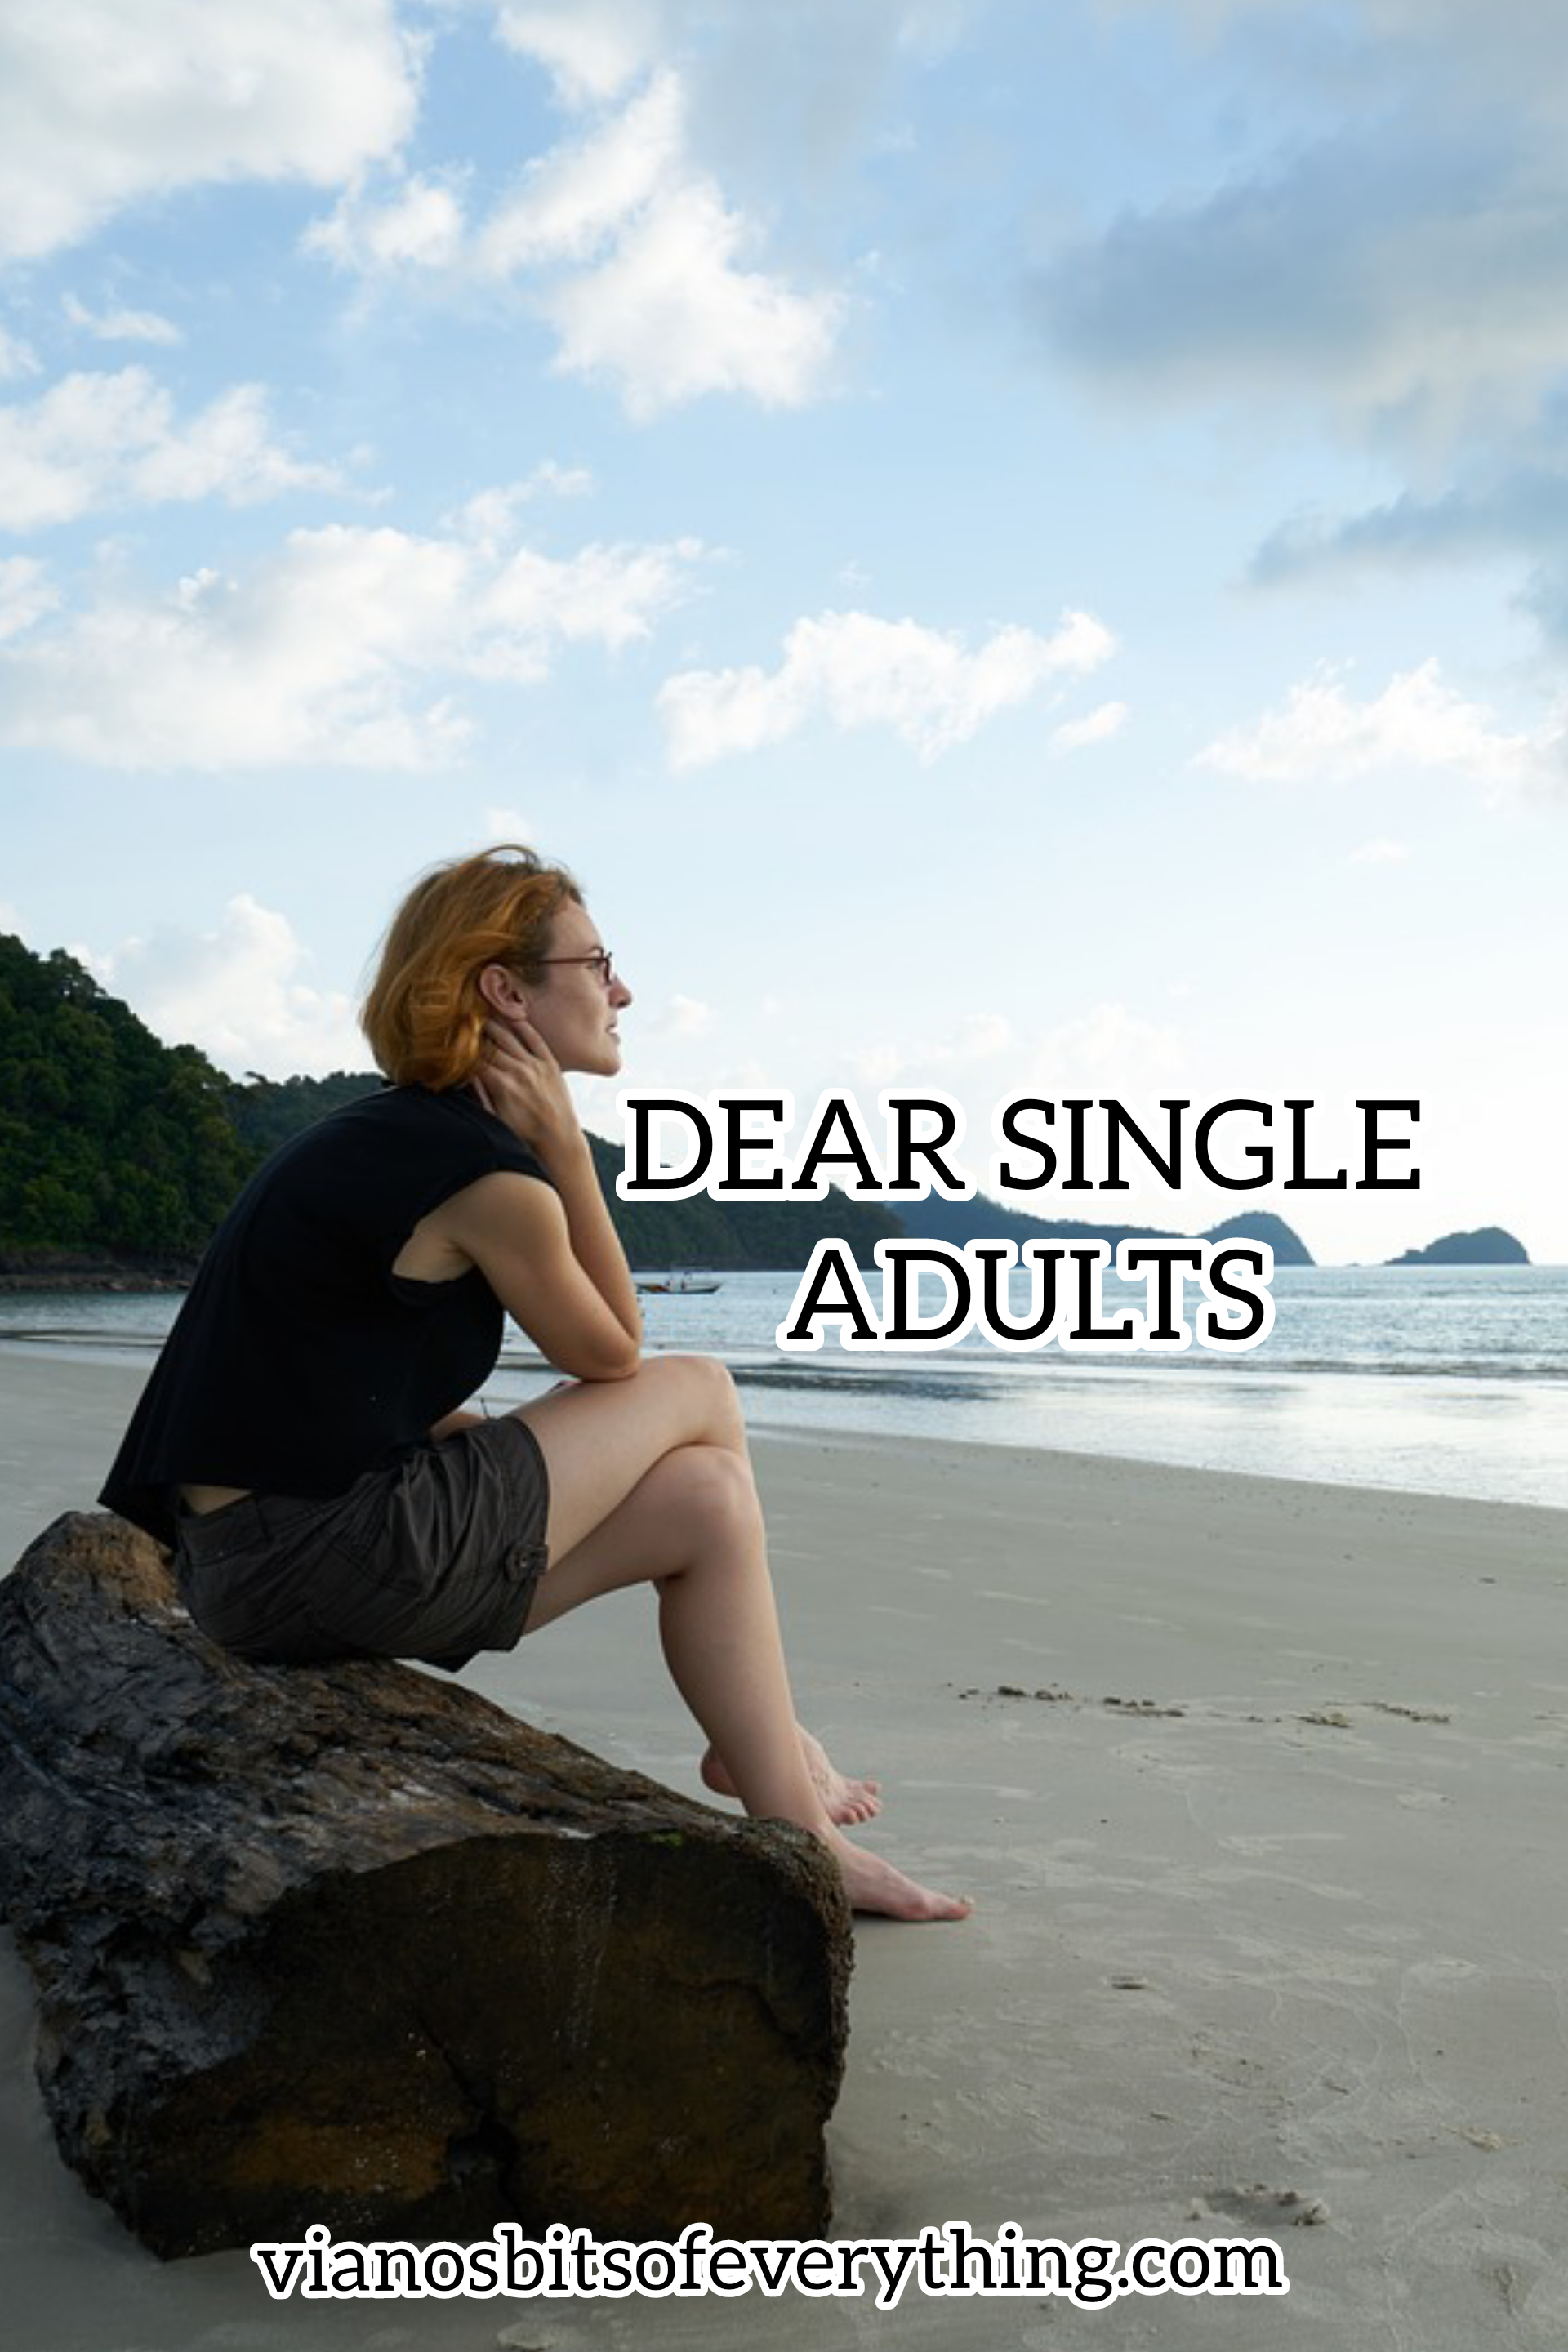 Dear Single Adults